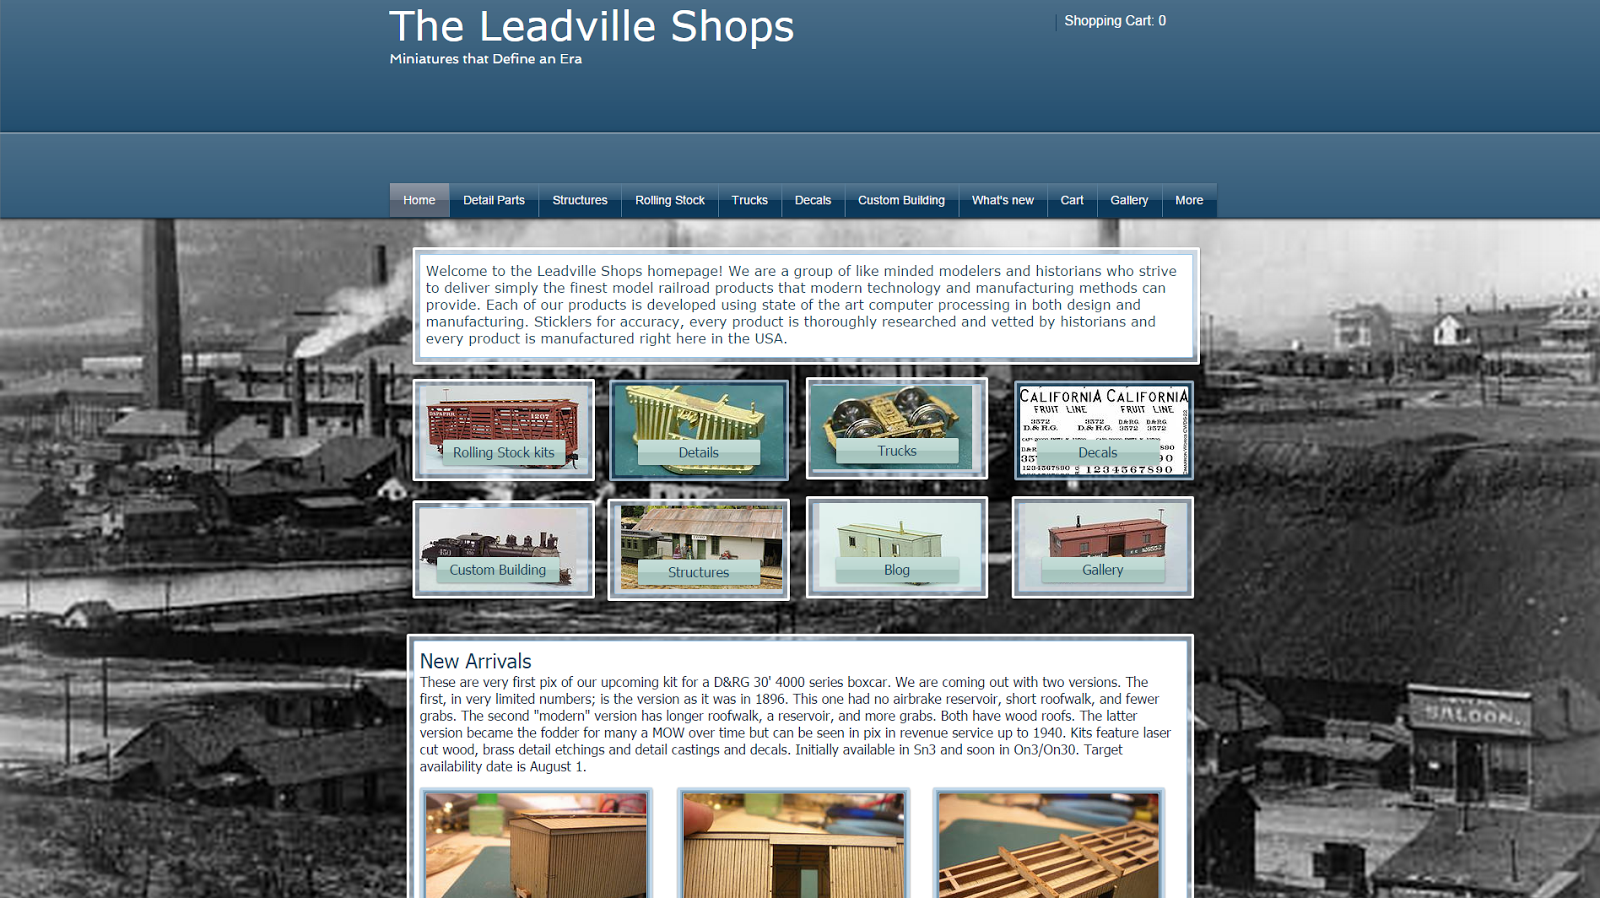 The Leadville Shops: